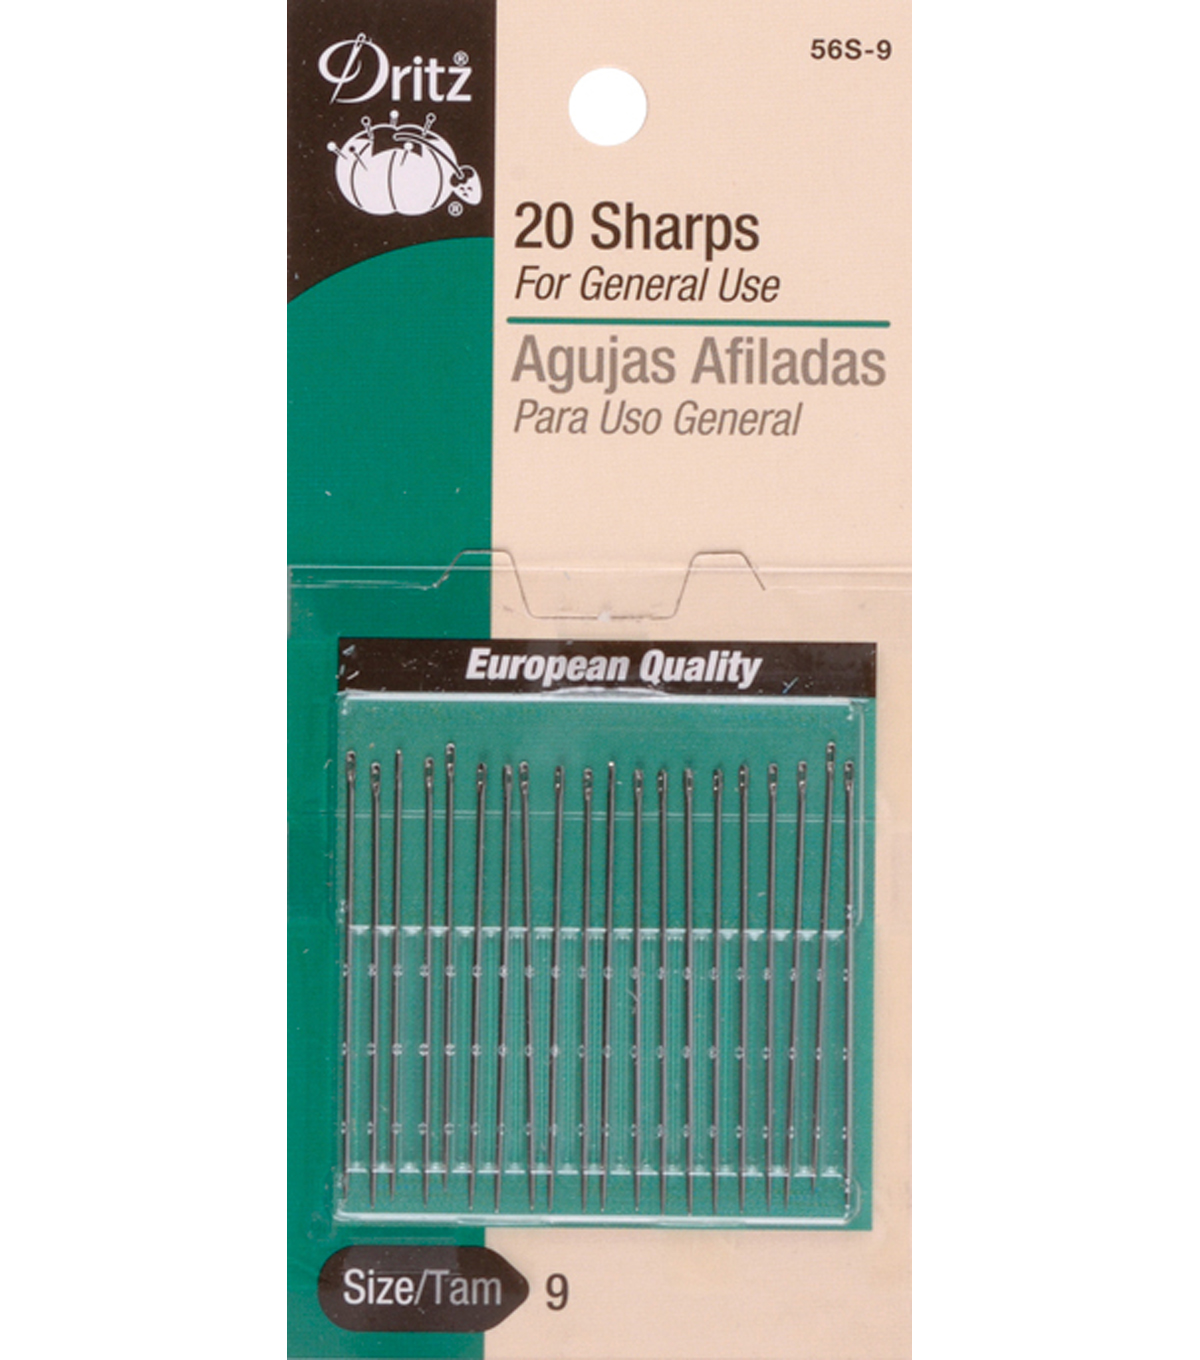 Dritz Sharps Hand Needles 20pcs Size 9